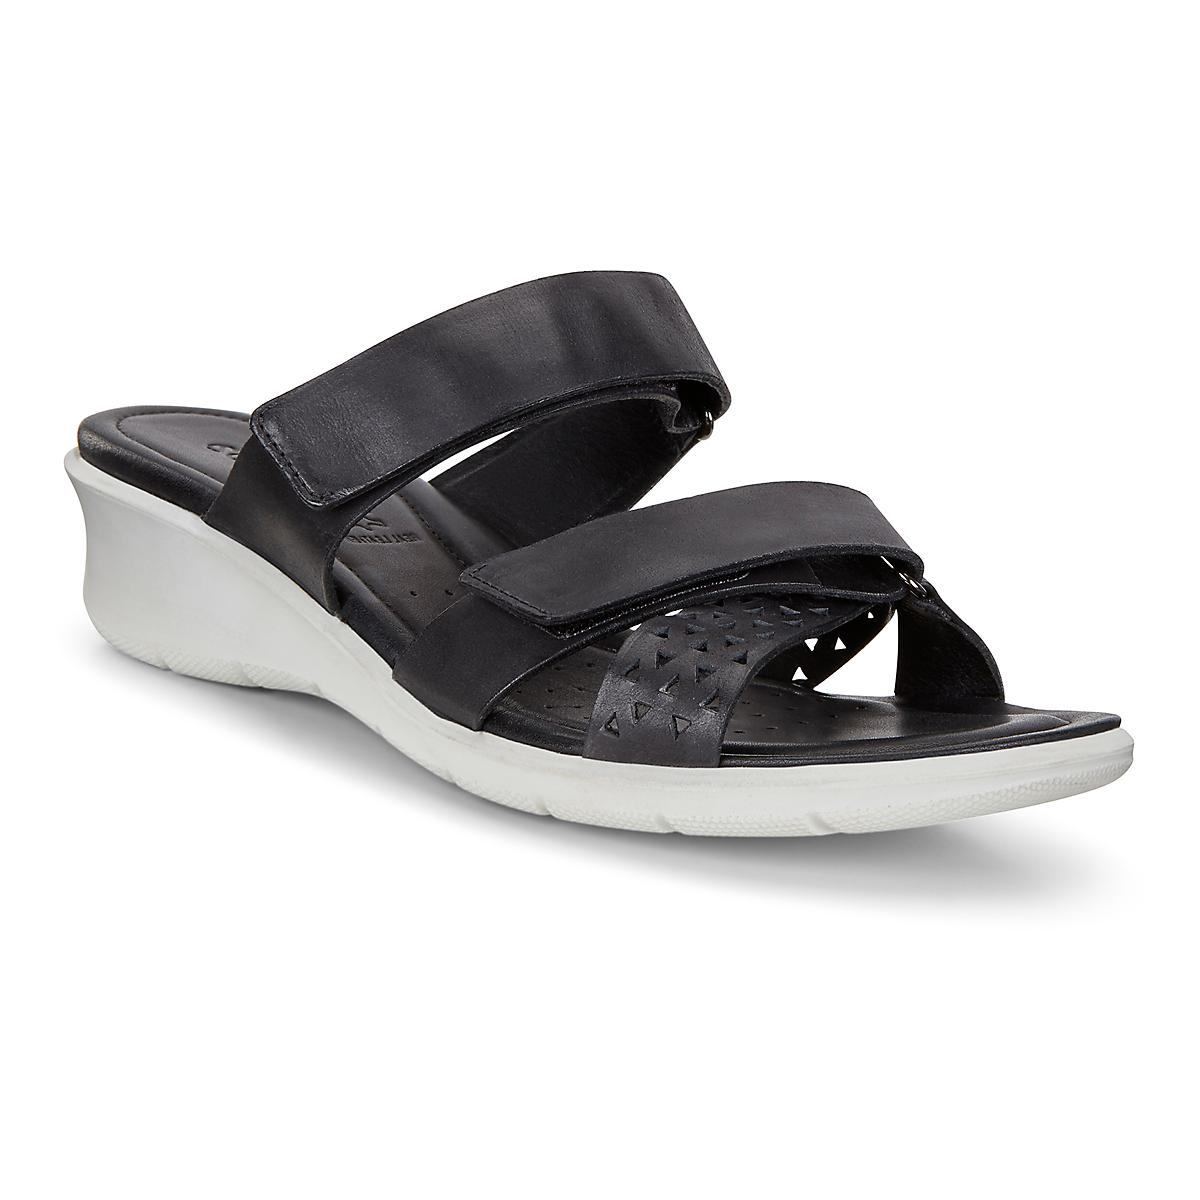 e18f46d6adca Womens Ecco Felicia Slide Sandals Shoe at Road Runner Sports